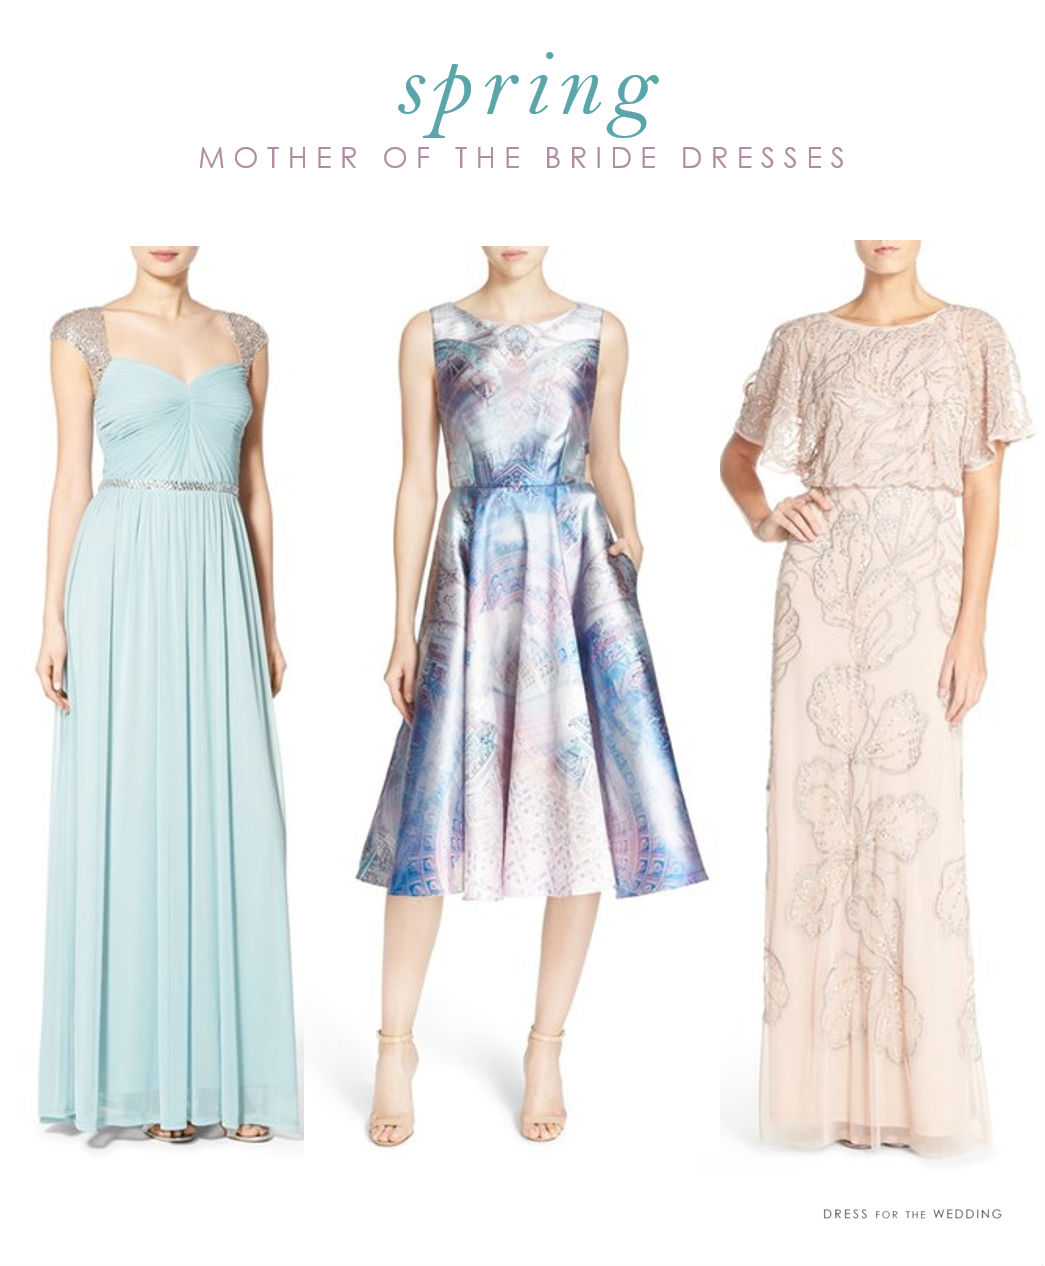 Spring mother of the bride dresses dress for the wedding for Wedding mother of the bride dresses